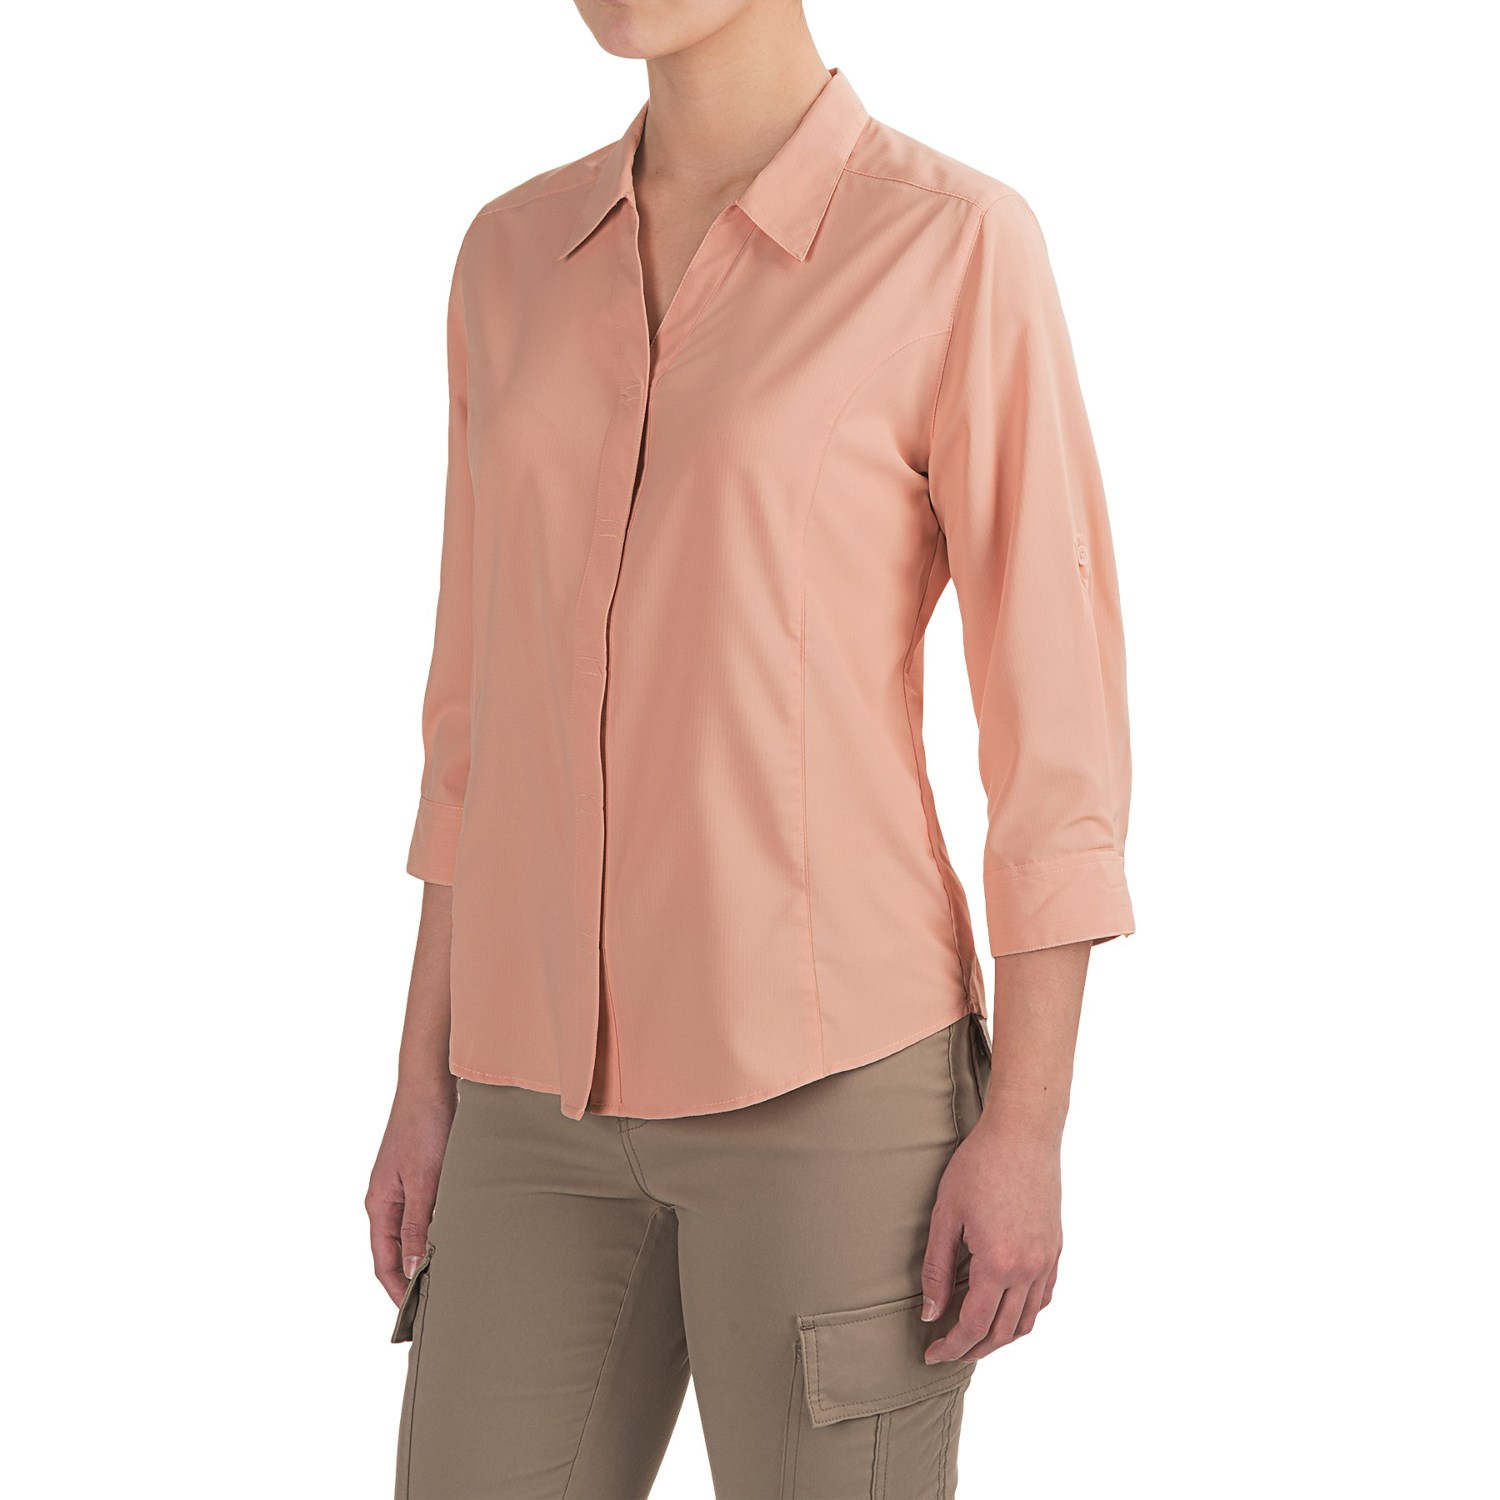 Royal robbins expedition shirt for women save 30 for Royal robbins expedition shirt 3 4 sleeve women s